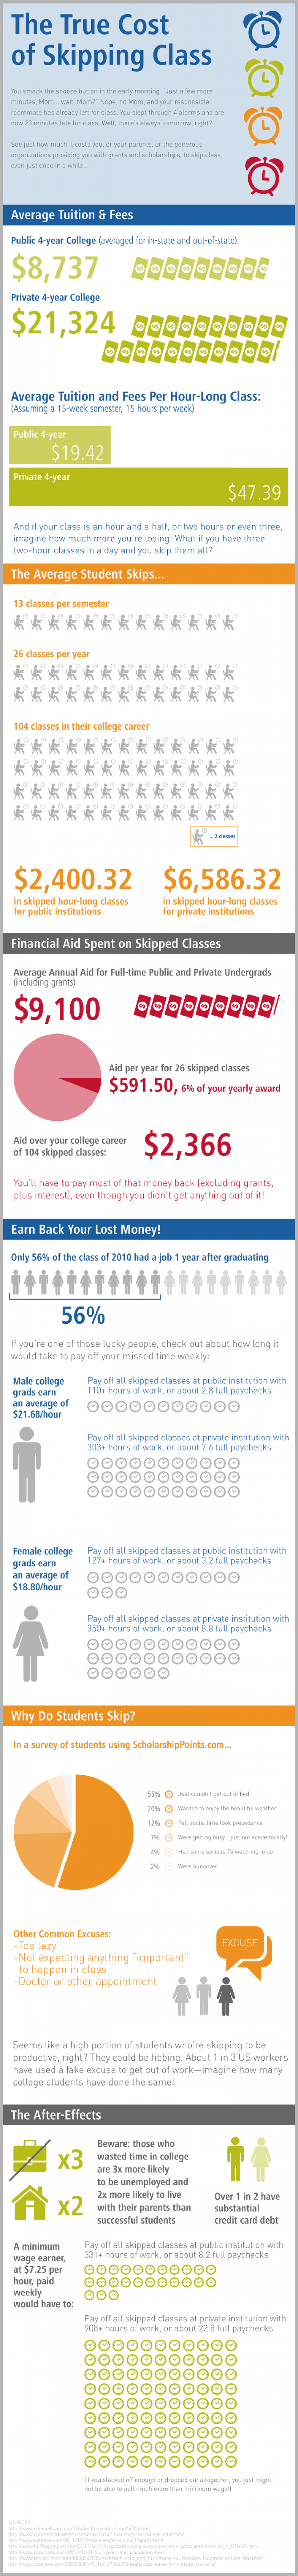 The True Cost of Skipping Class Infographic